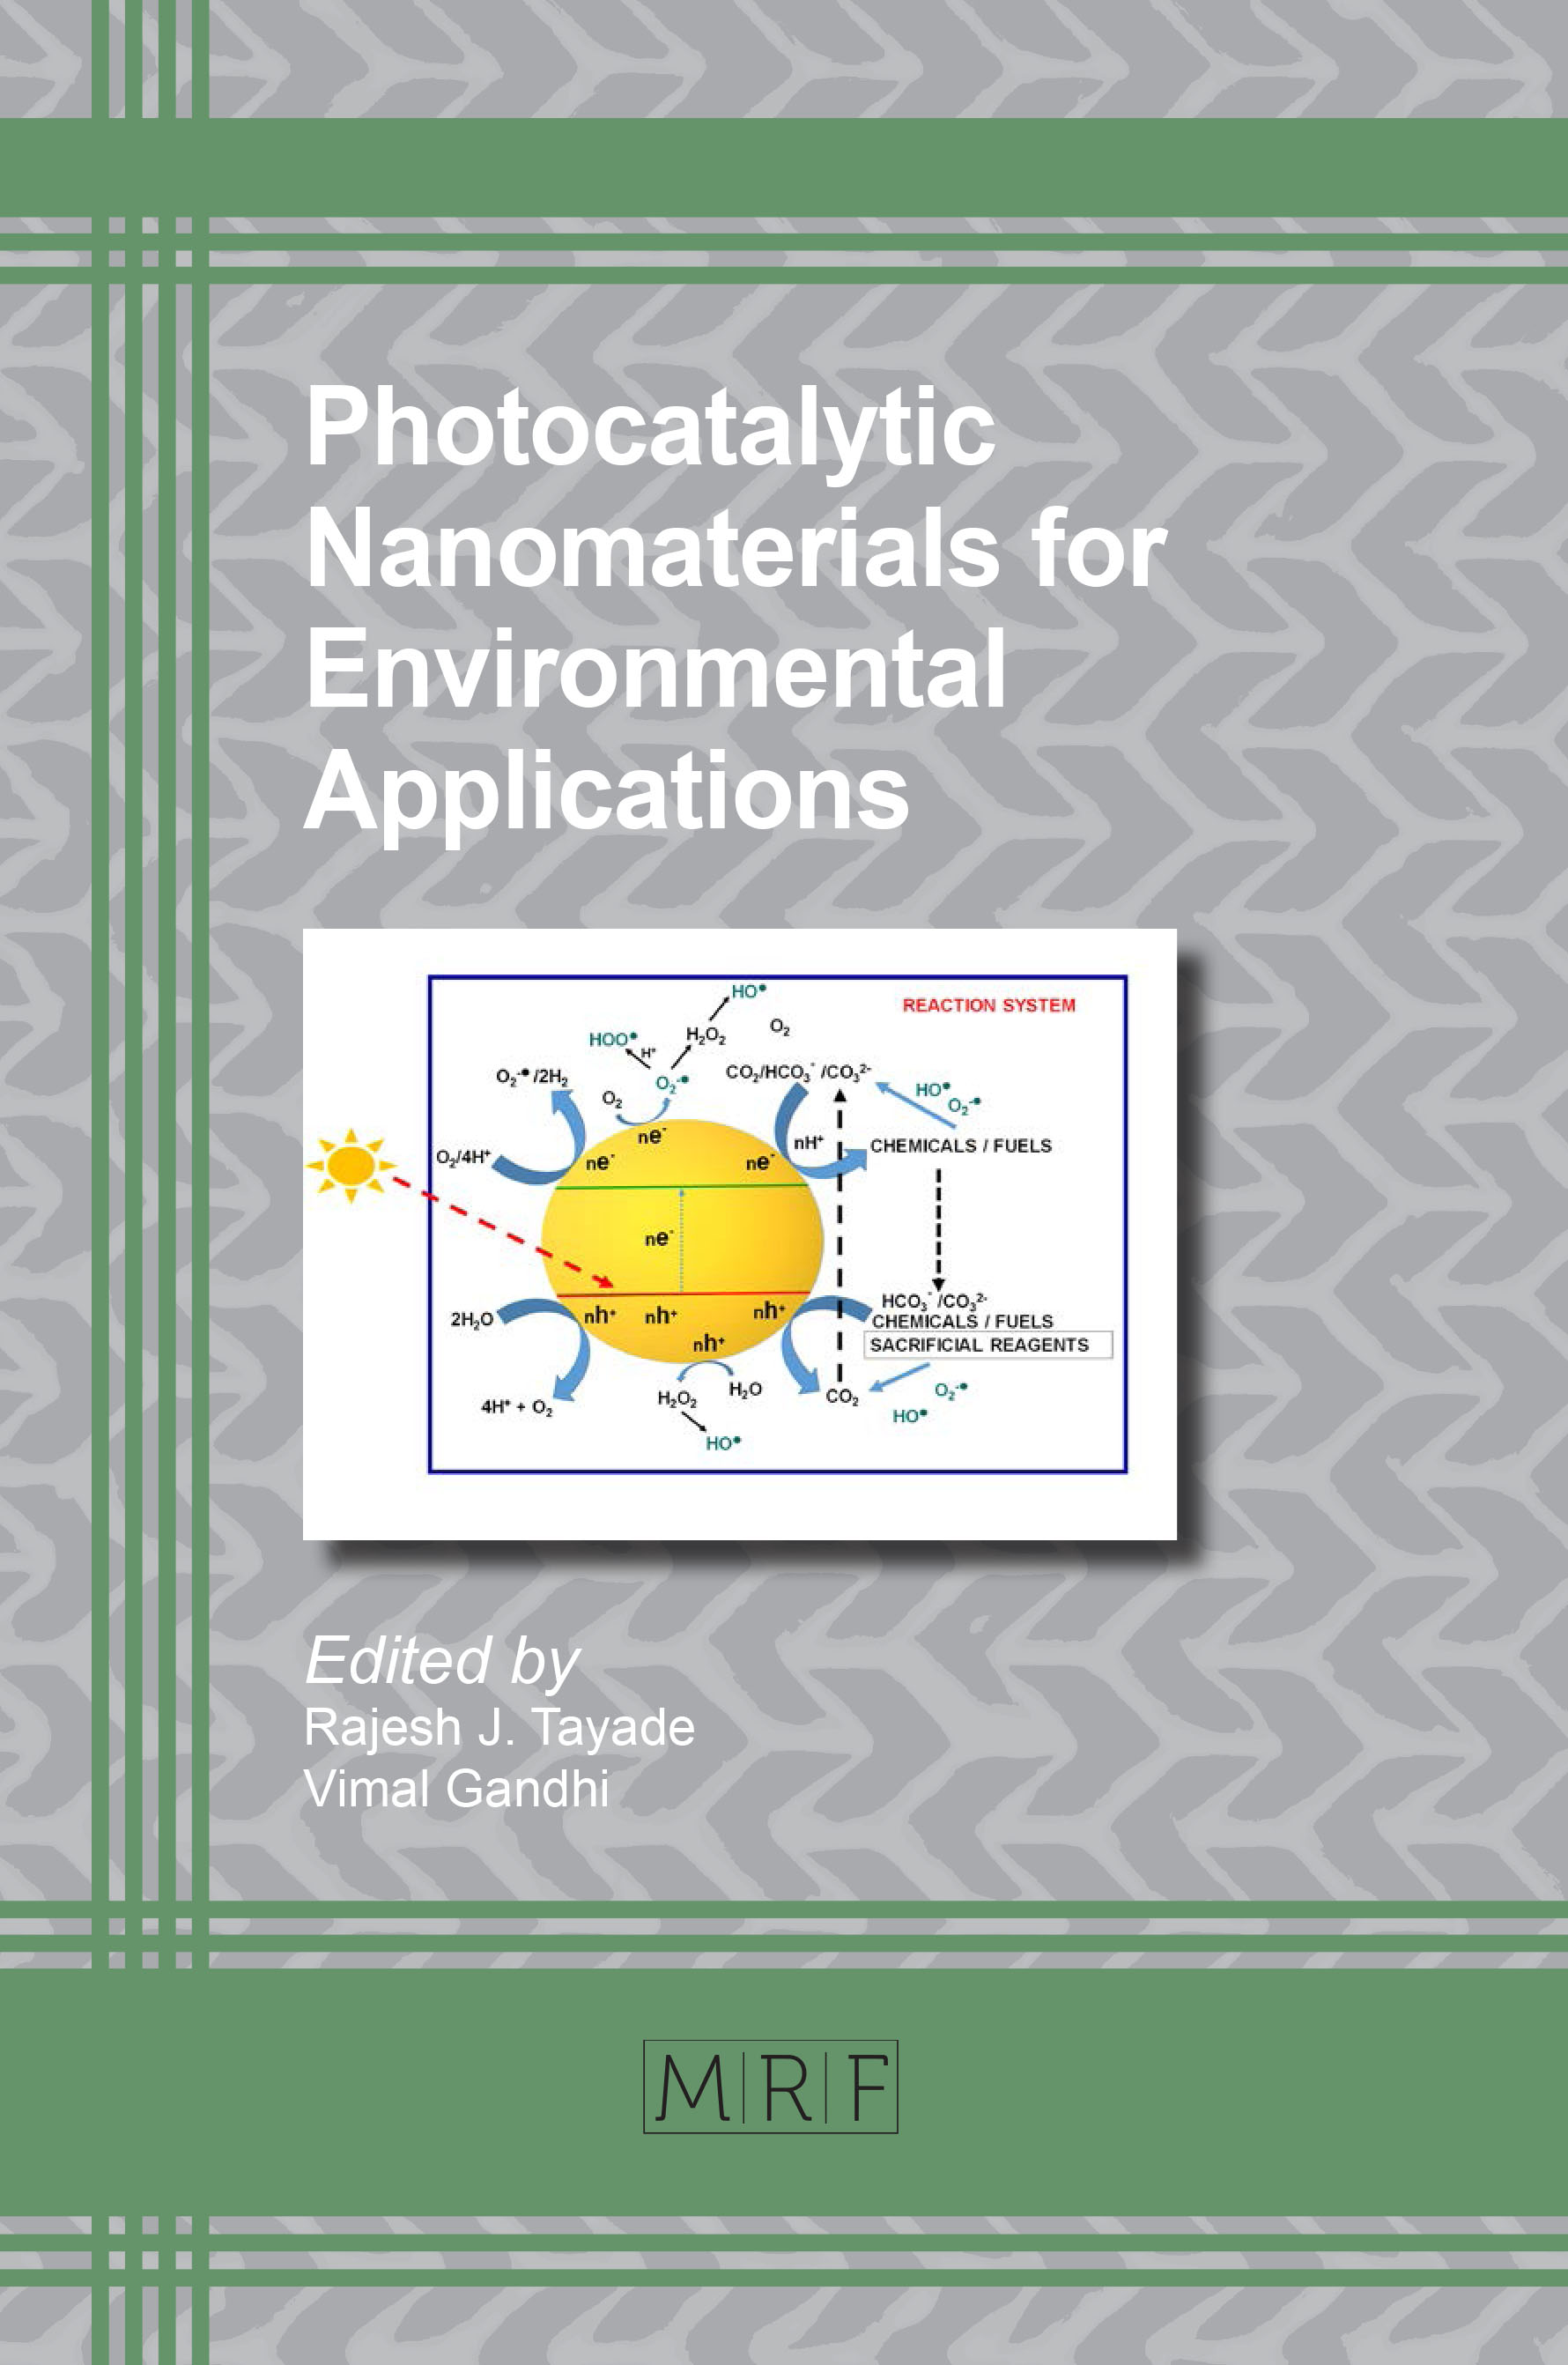 Photocatalytic Nanomaterials